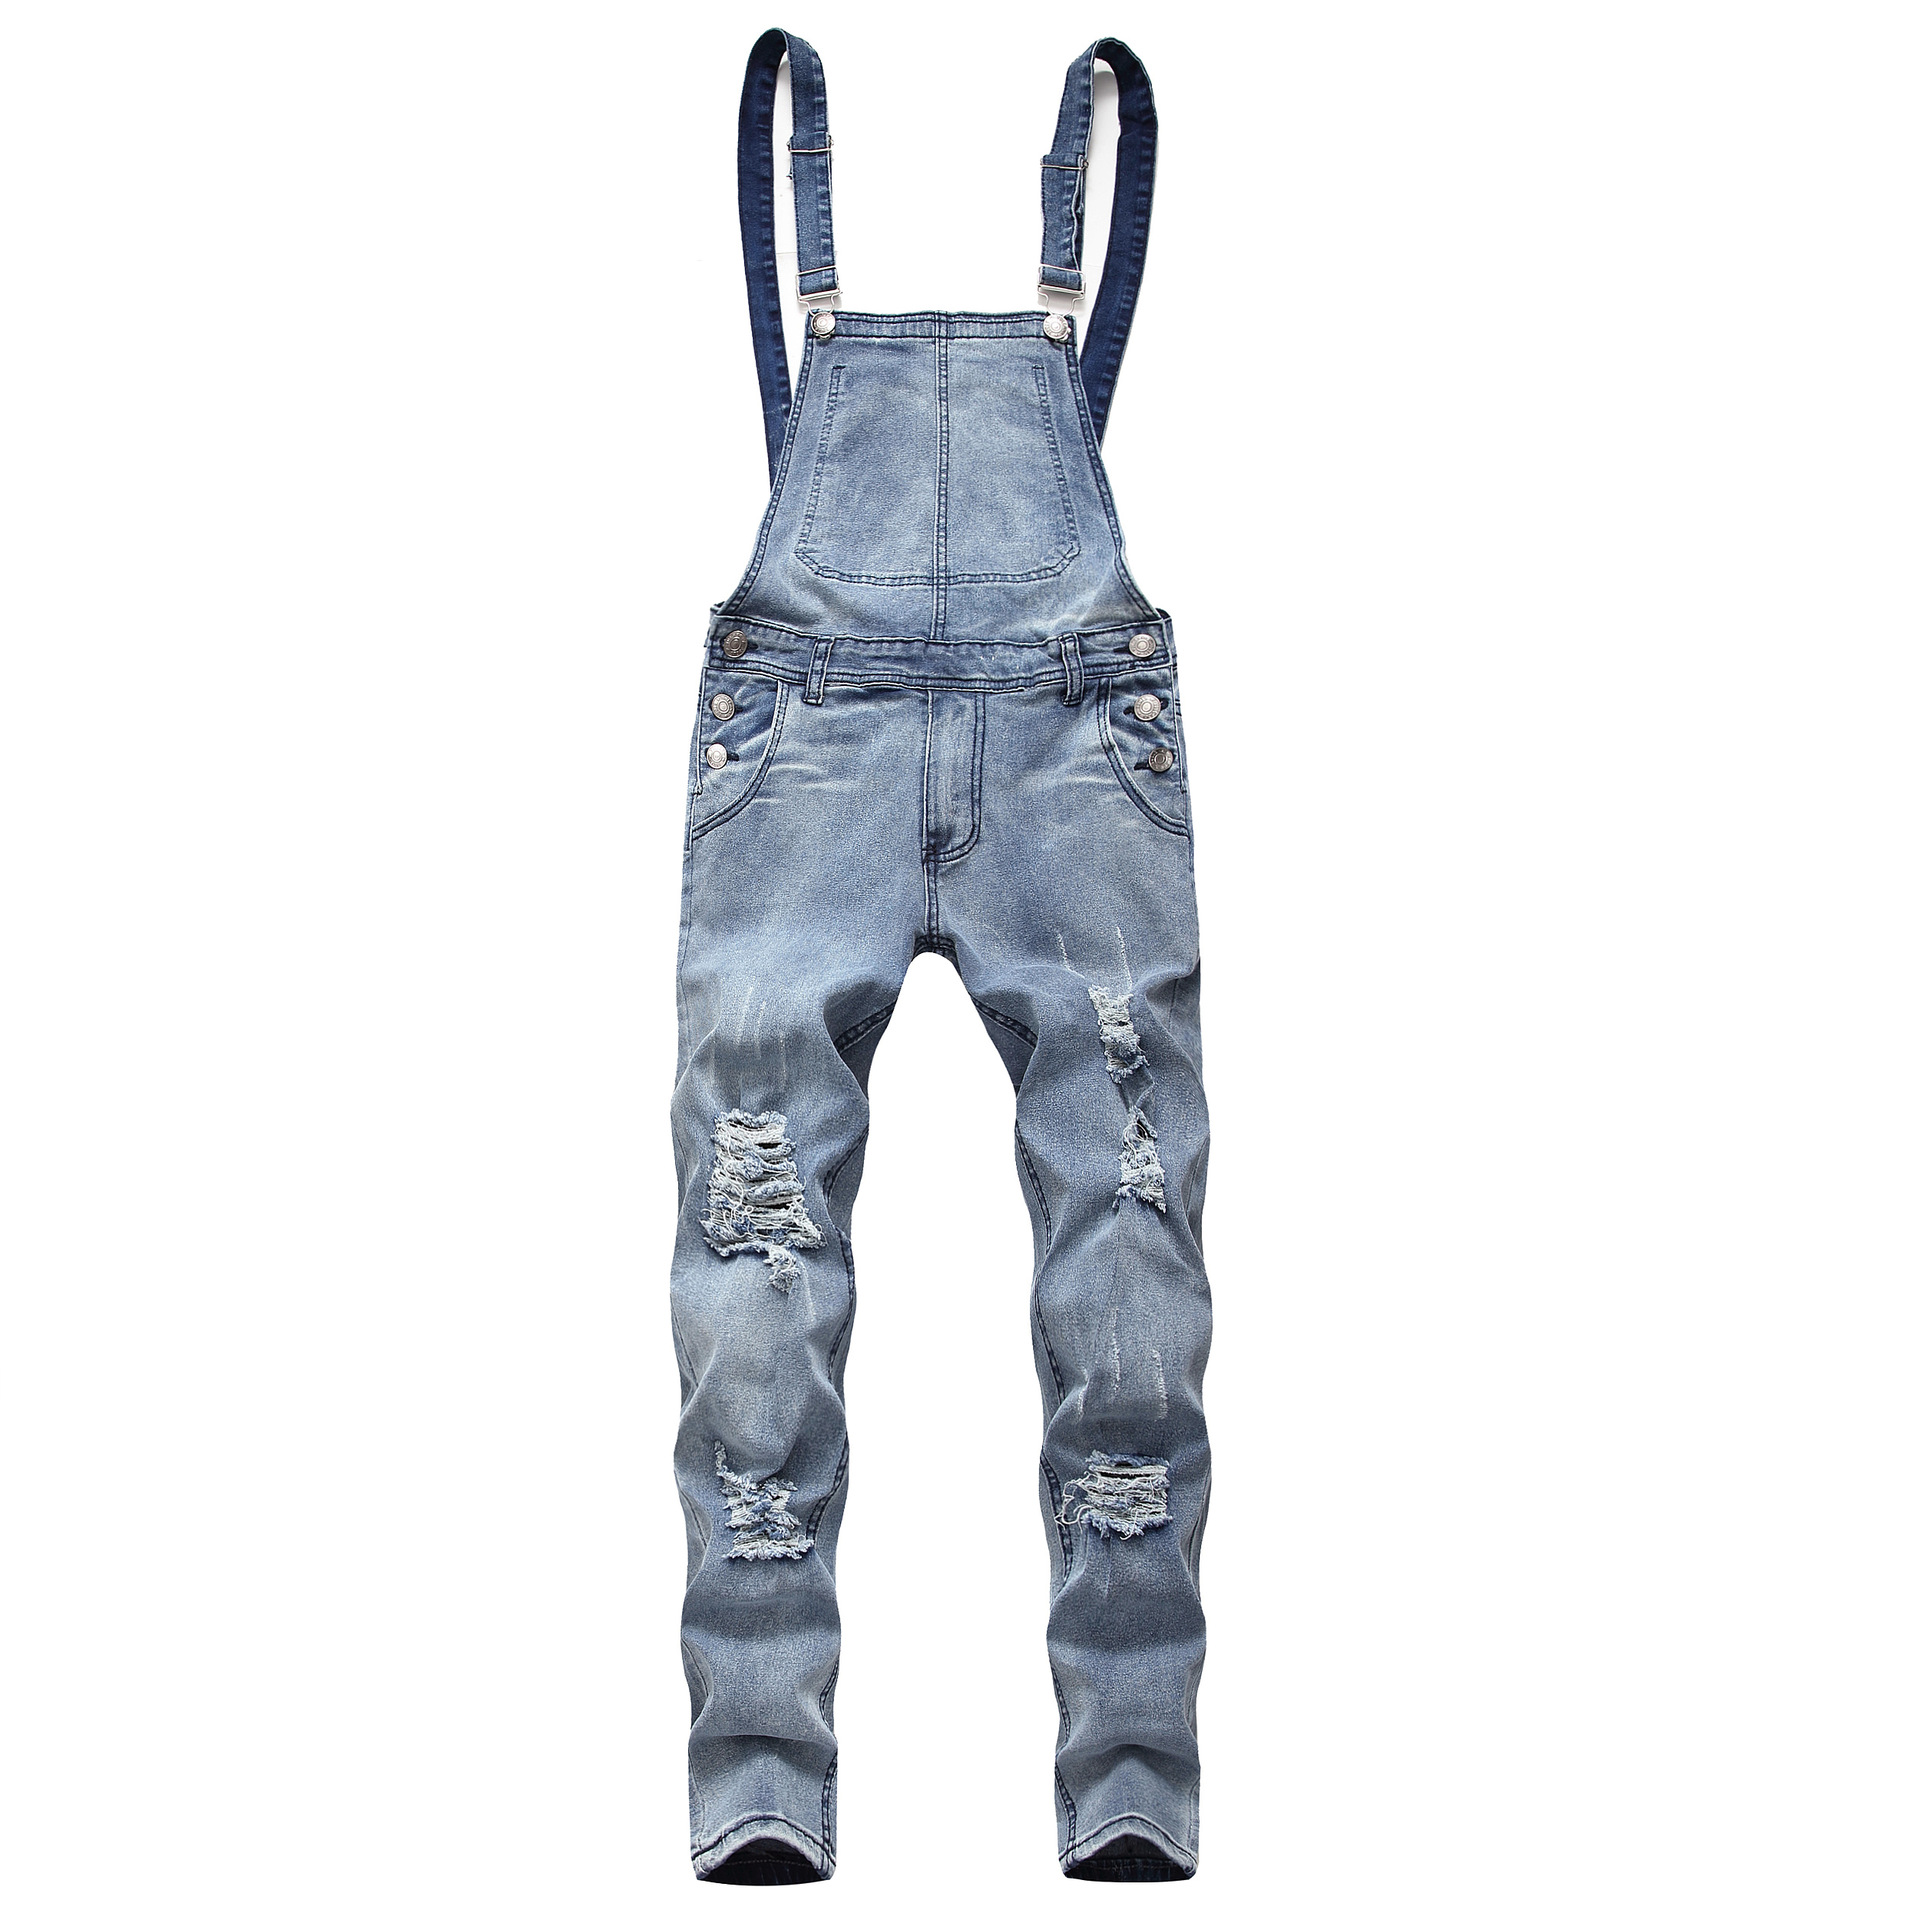 4 Colors Overalls For Men Casual Hole Distressed Denim Wash Jeans Overall